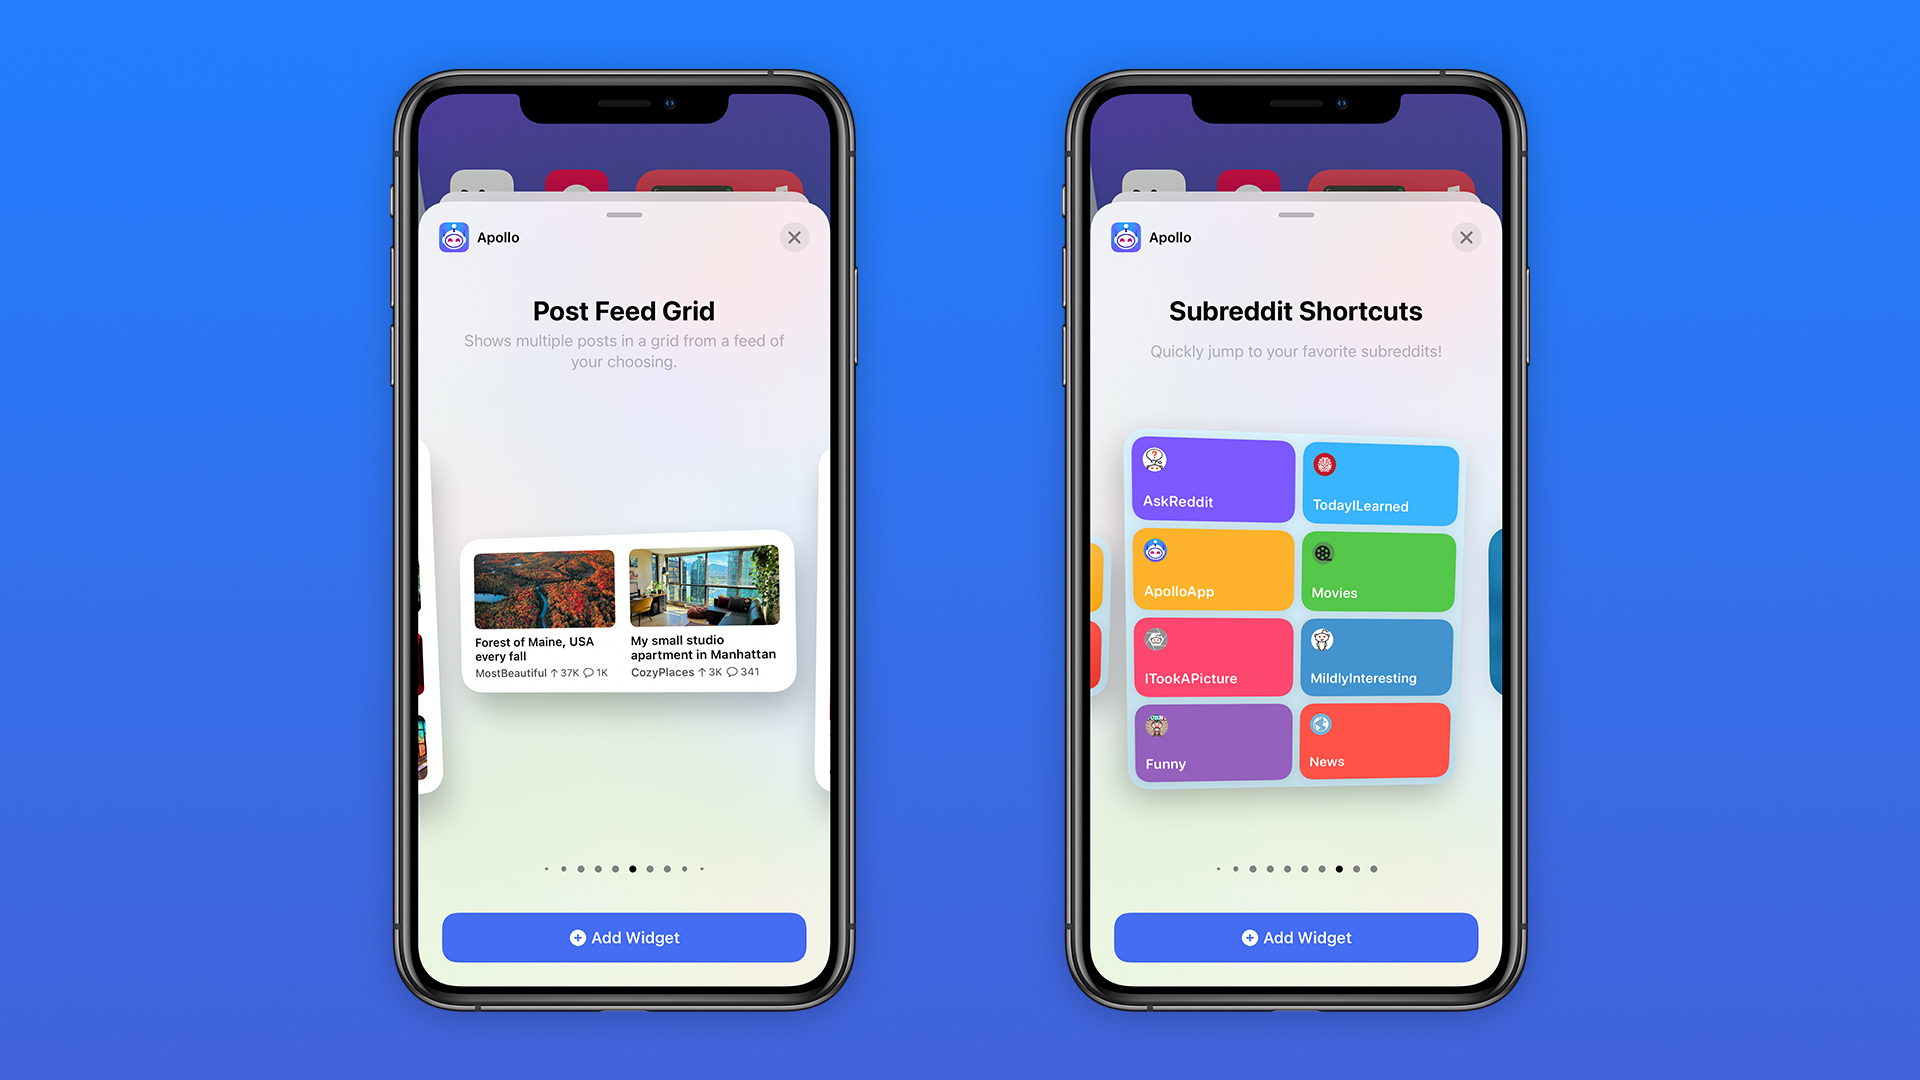 Apollo For Reddit Now Offers Ios 14 Widgets And Picture In Picture Support 9to5mac